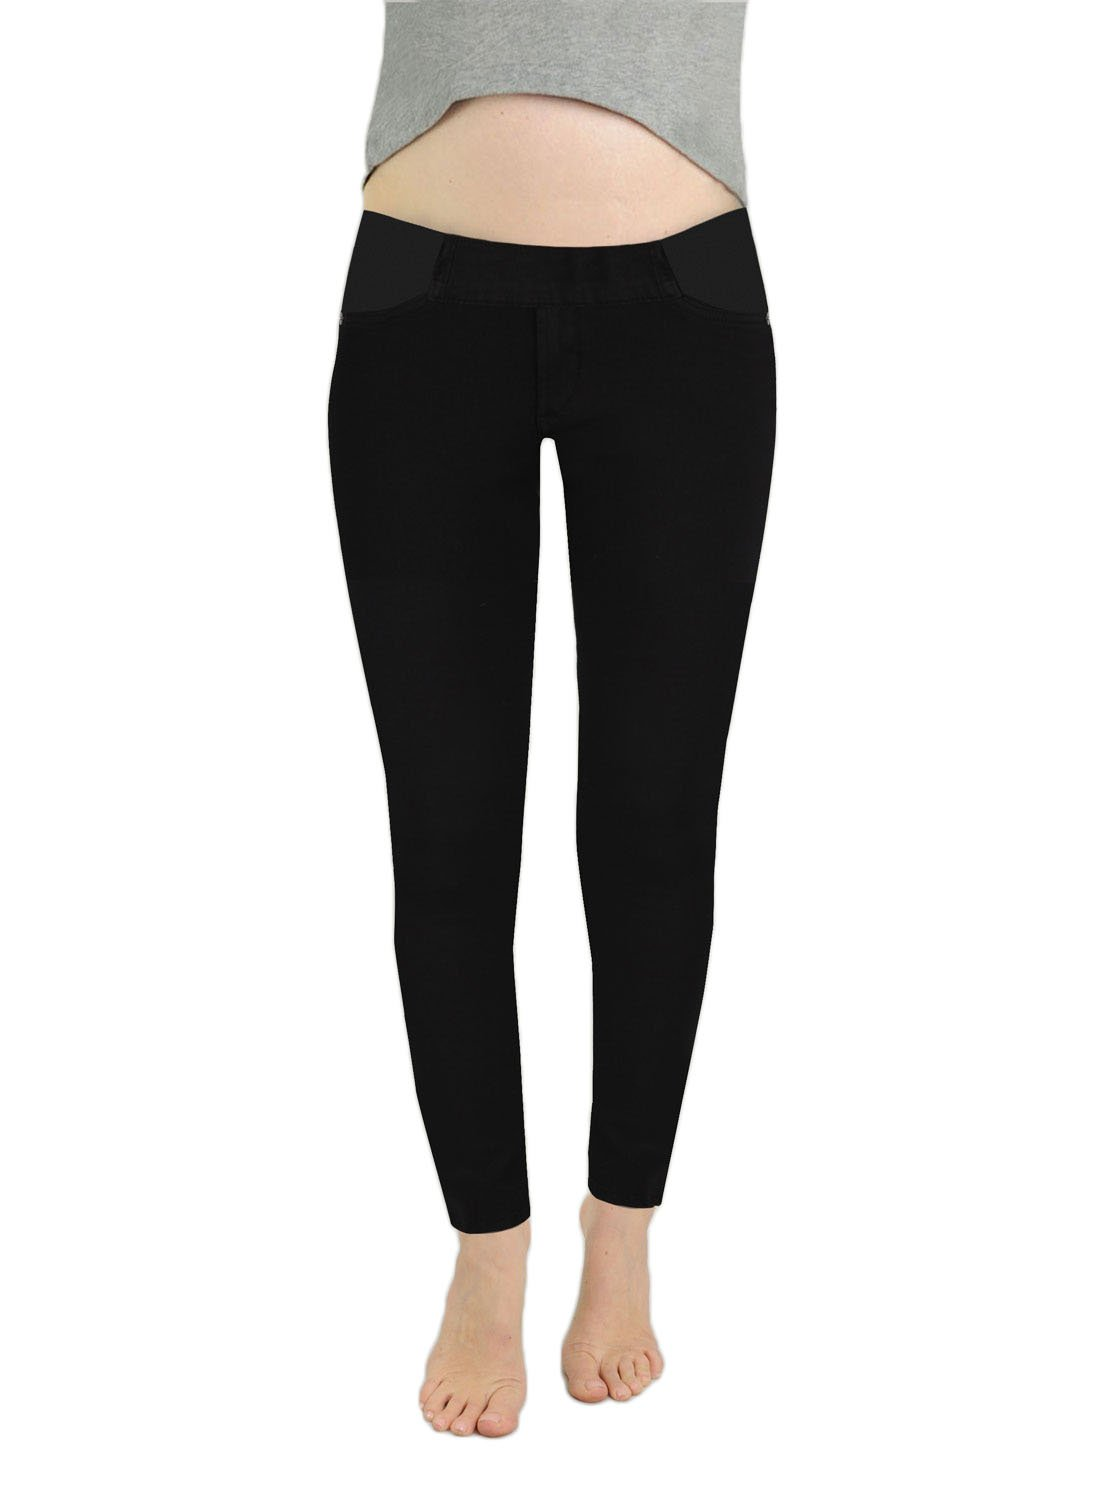 James Jeans Women's Twiggy Under-Belly Pocket Expansion Maternity Legging Jean in Black Swan